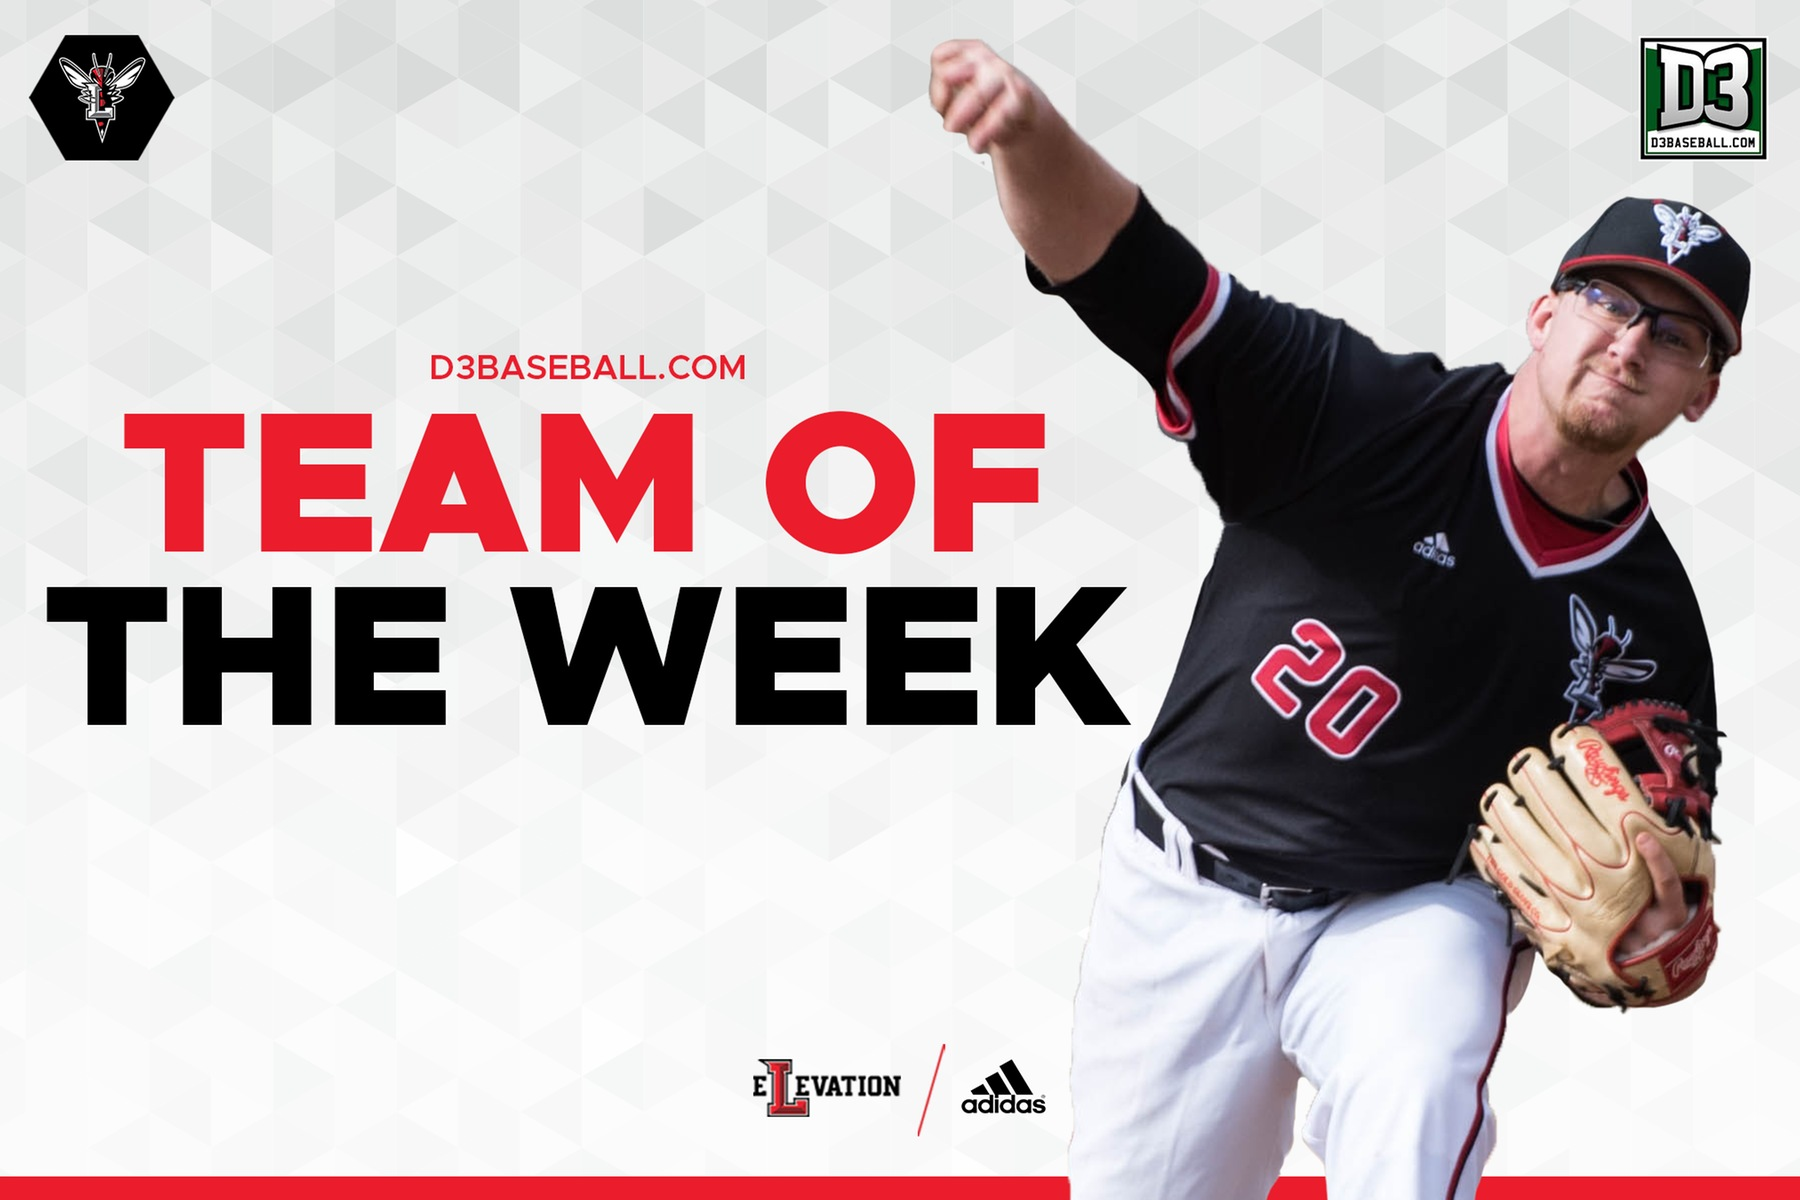 Hunter Campbell throwing a pitch over the d3baseball.com team of the week graphic on white background.